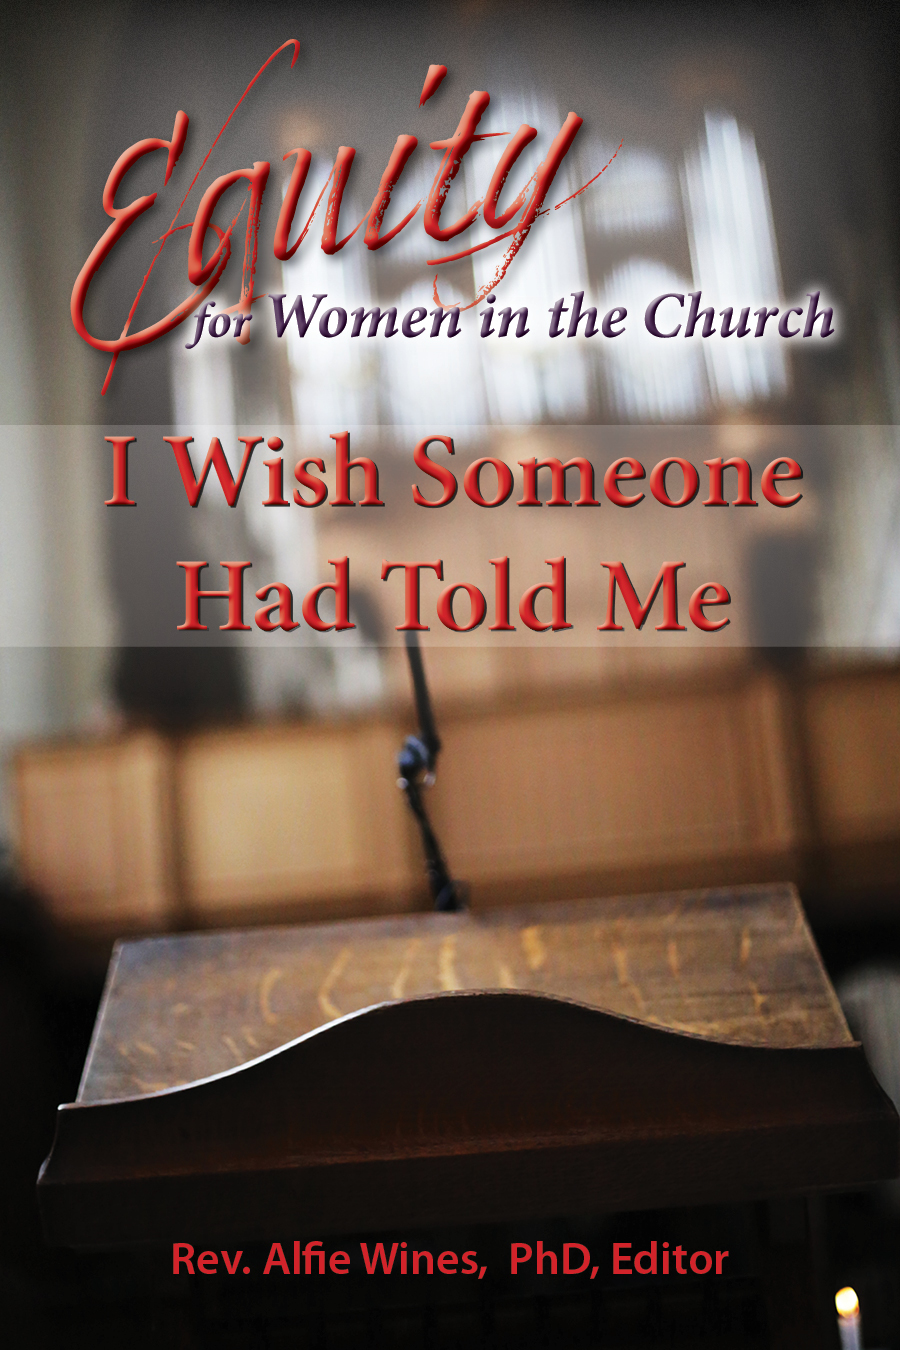 I Wish Someone Had told Me: Equity for Women in the Church, Edited by Rev. Dr. Alfie Wines